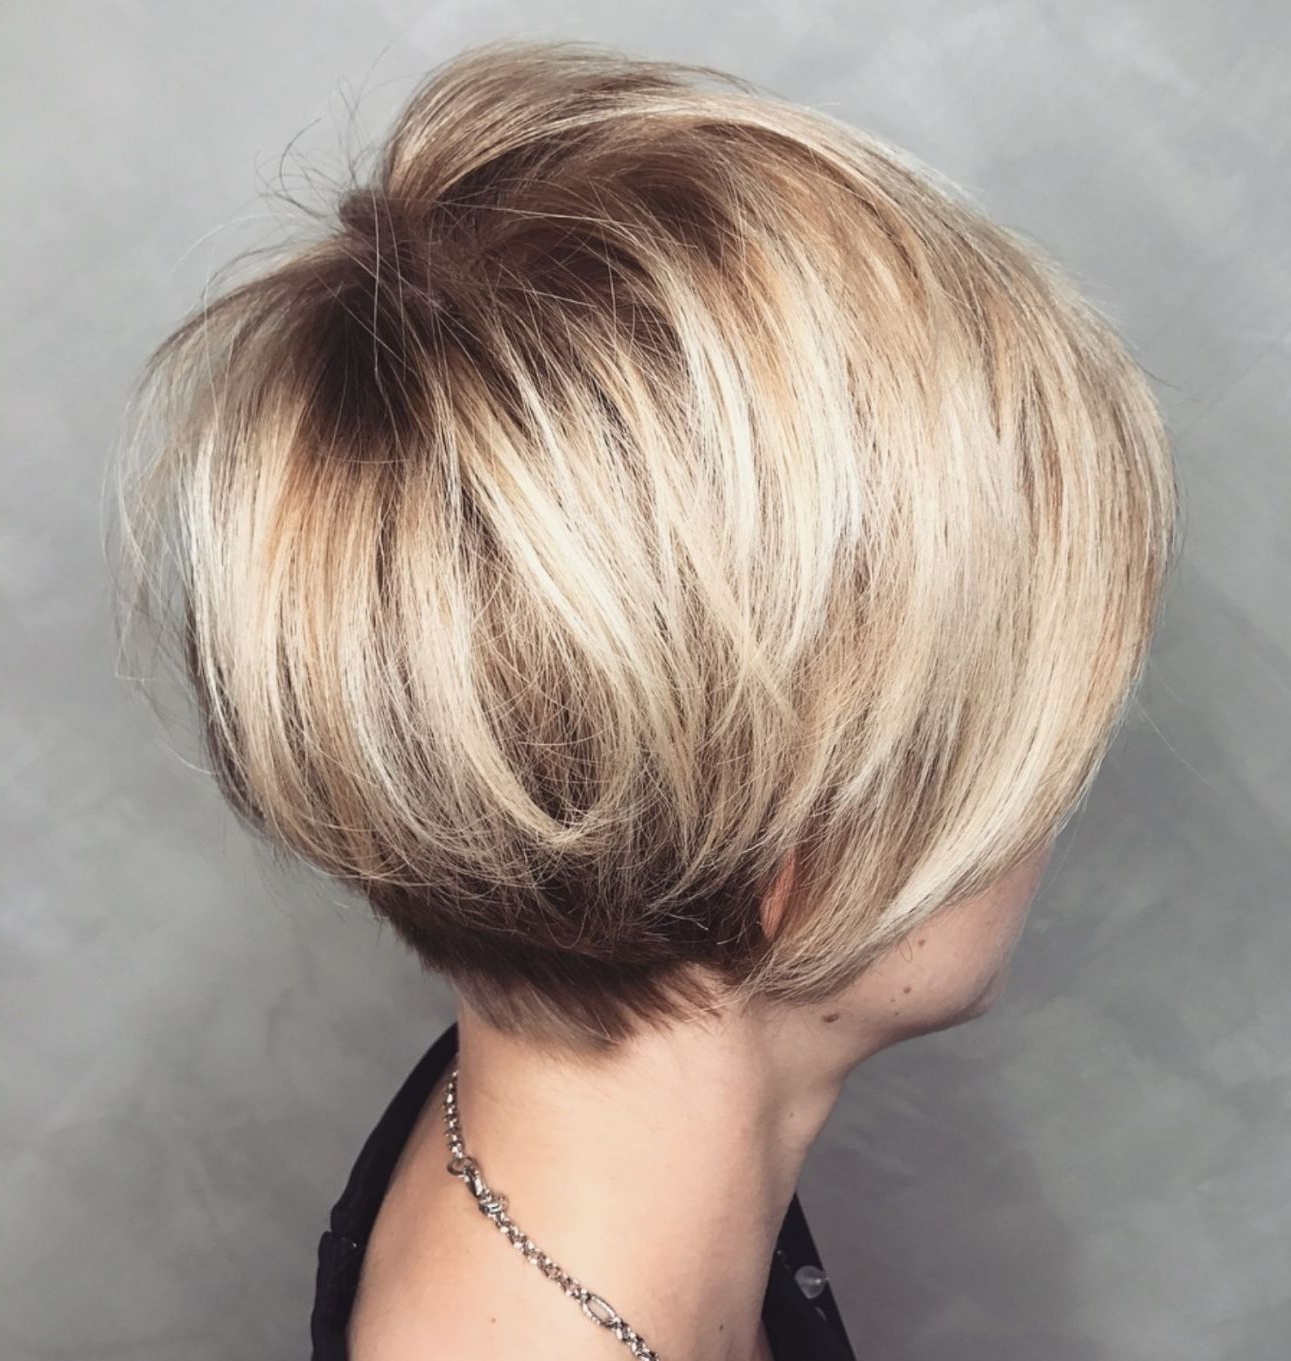 100 Mind Blowing Short Hairstyles For Fine Hair In 2019 With Regard To Long Pixie Haircuts With Sharp Layers And Highlights (View 16 of 20)